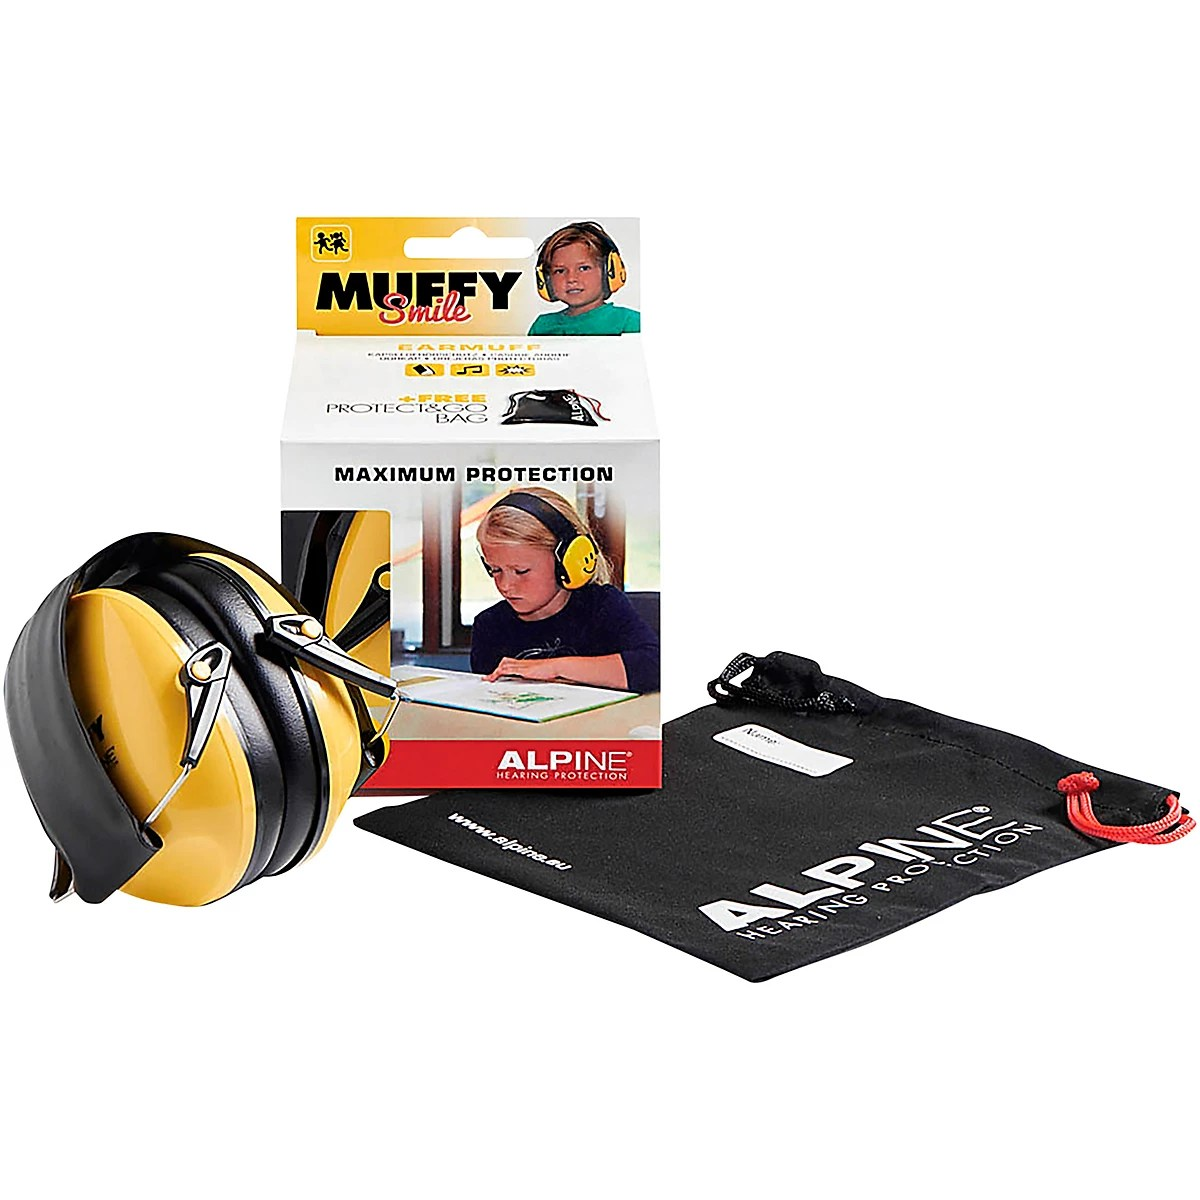 Alpine Hearing Protection Muffy Smile Yellow Protective